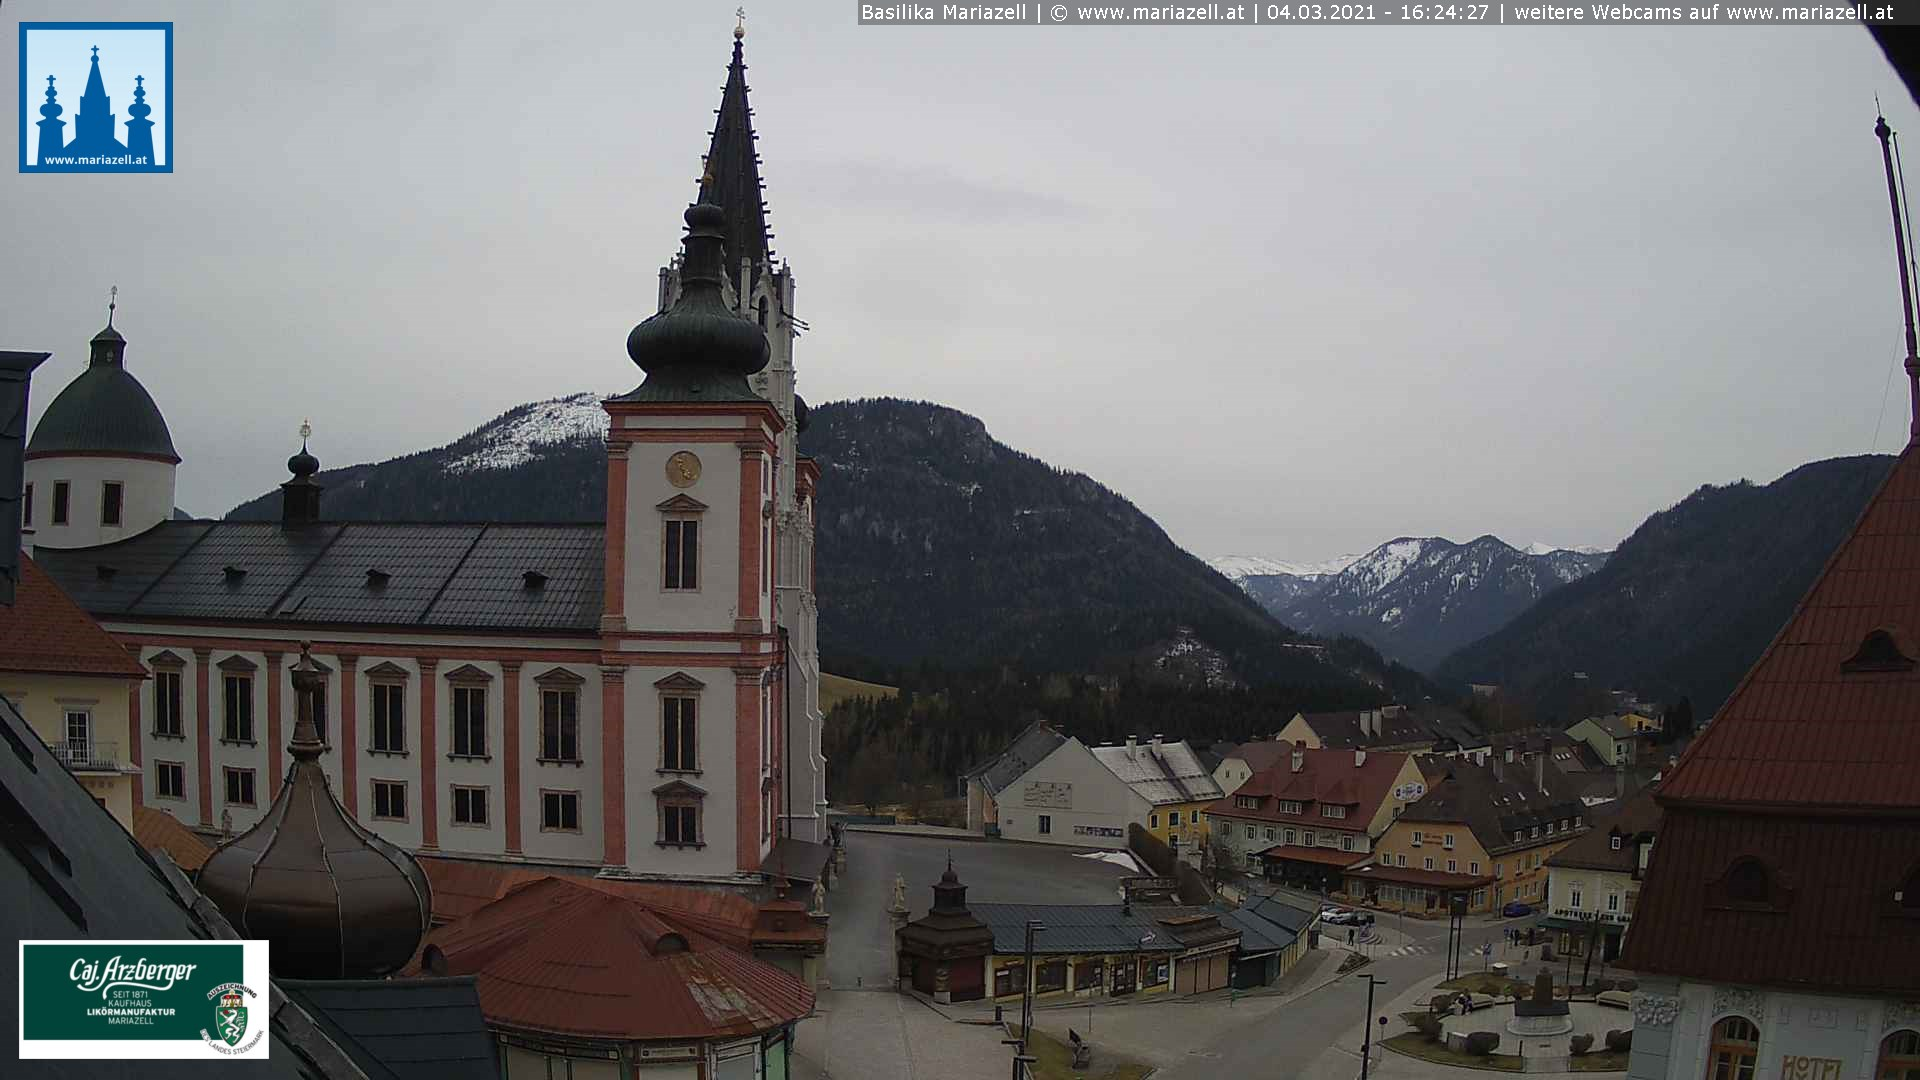 Webcam Basilika